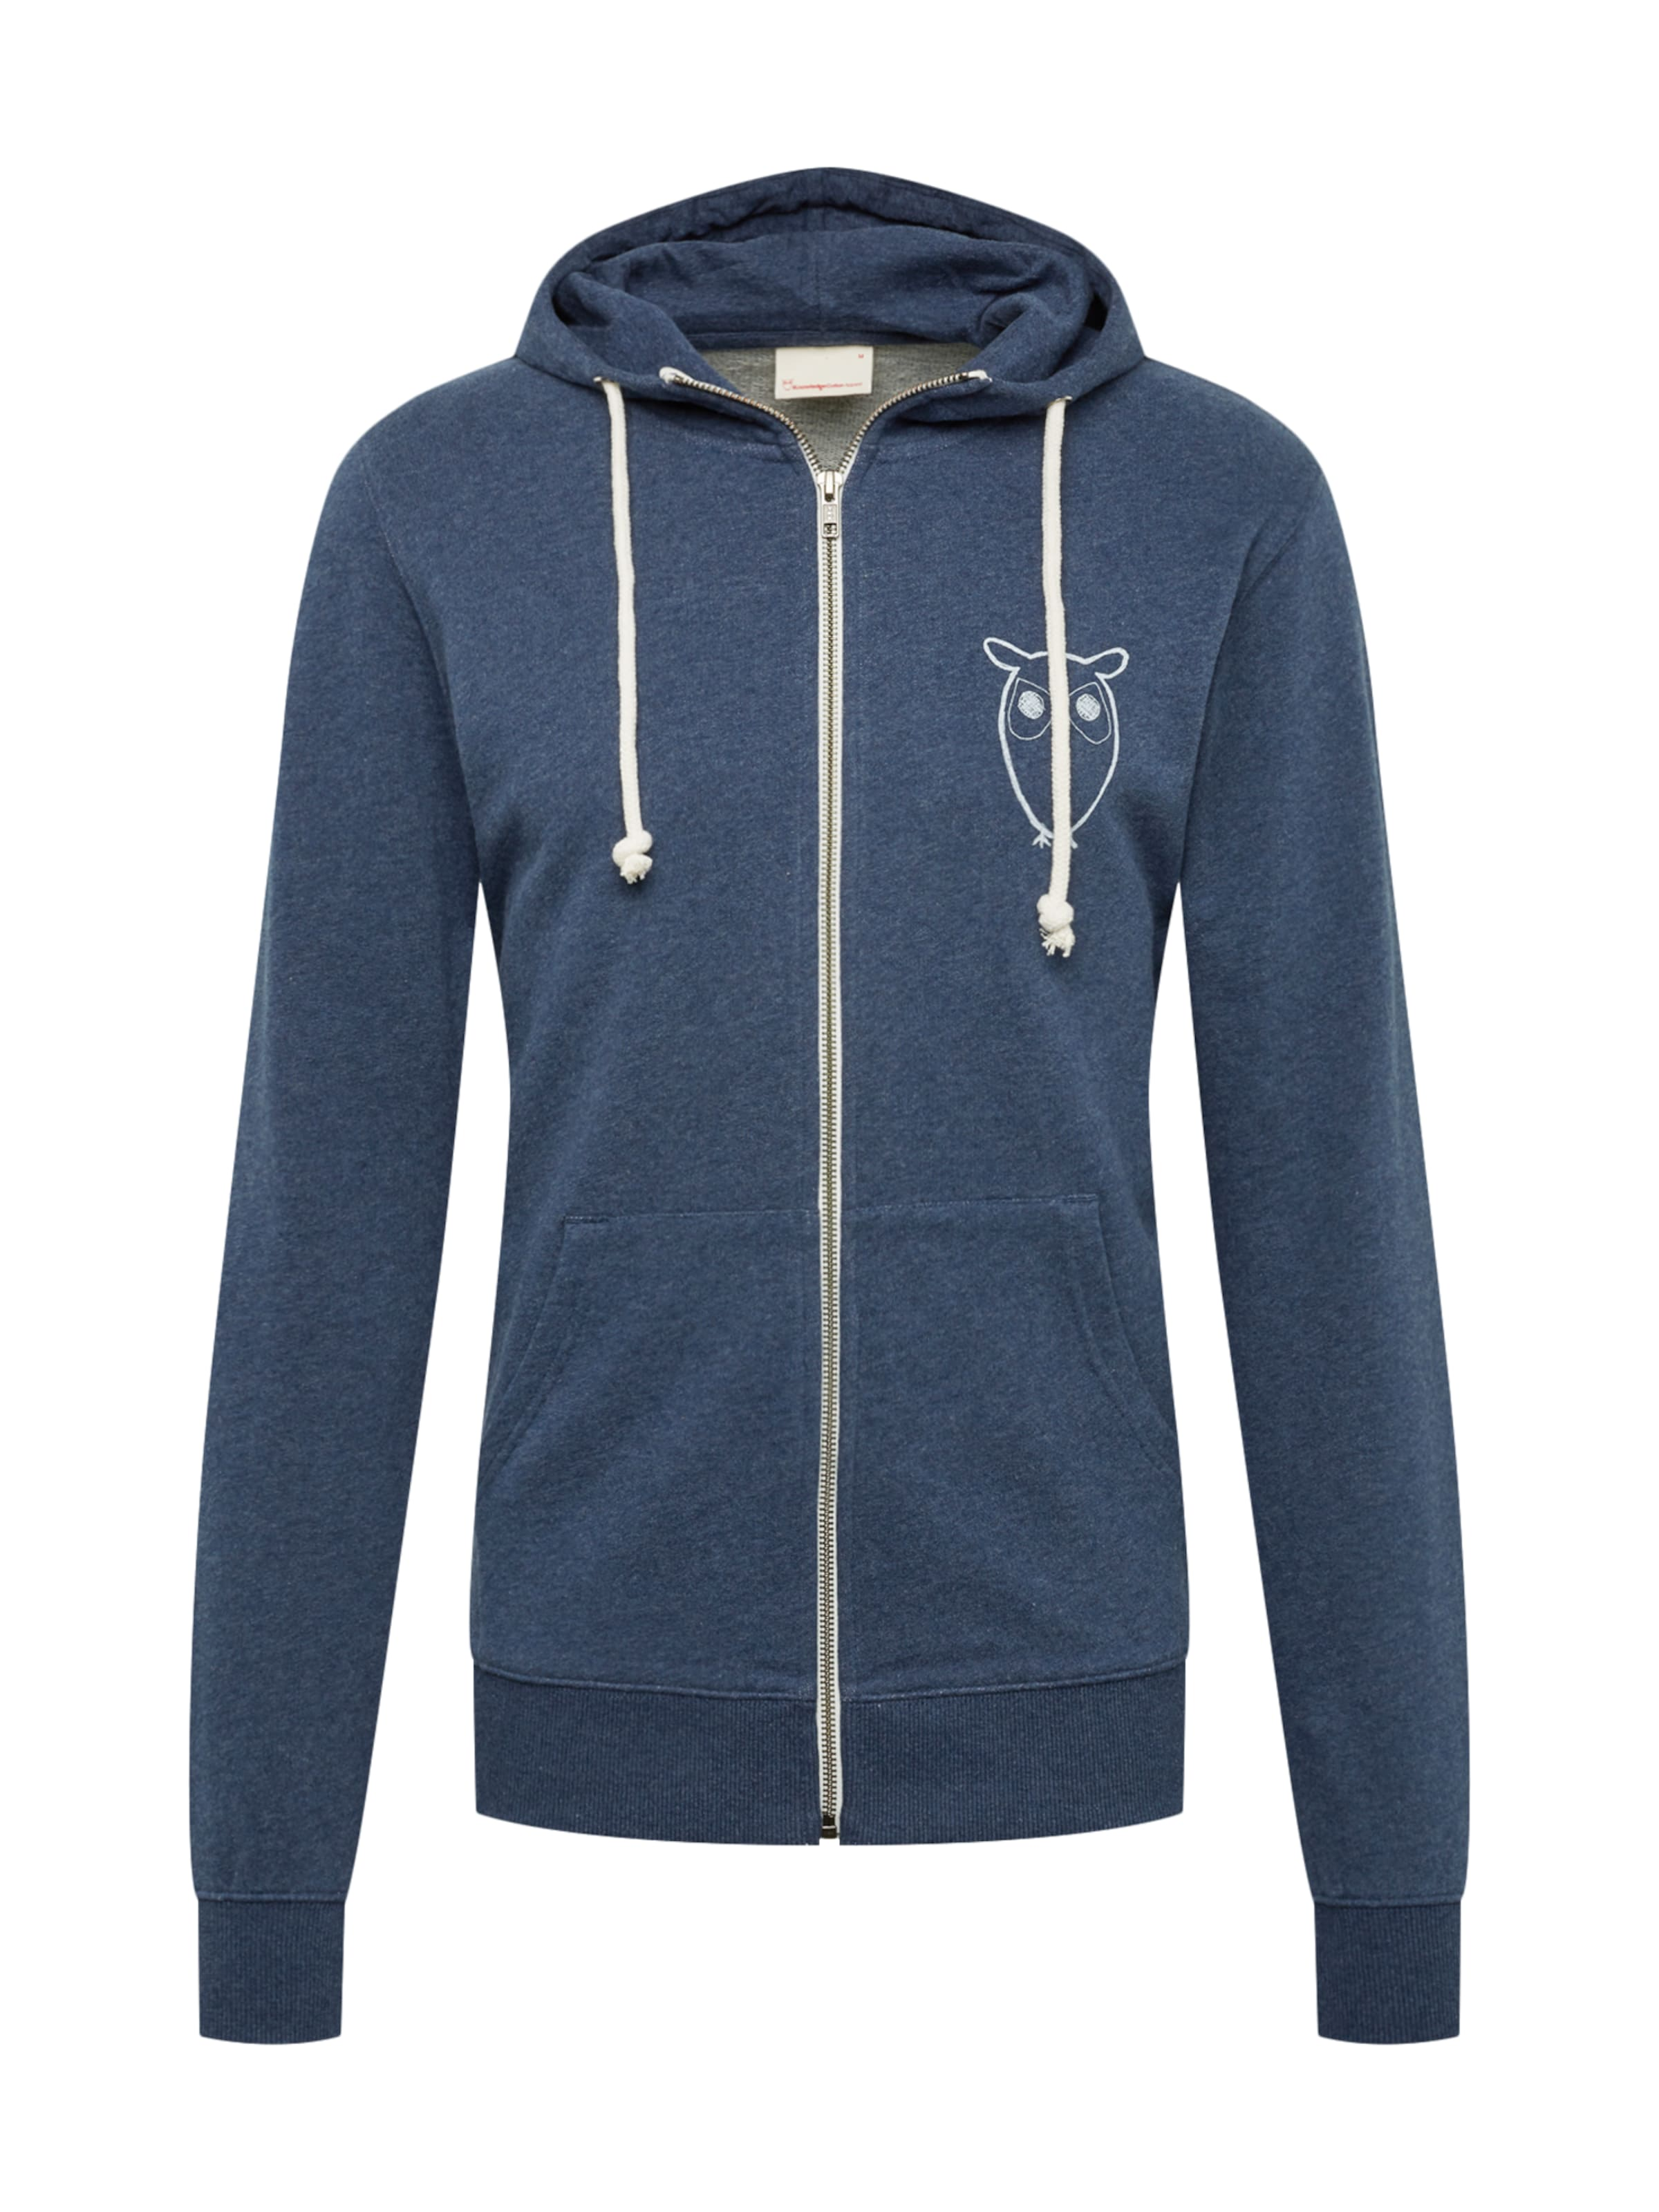 Blau Chest Sweatjacke Sweat 'zip Hood Apparel In Owl LogoGots' Knowledgecotton With 9YWIDEH2